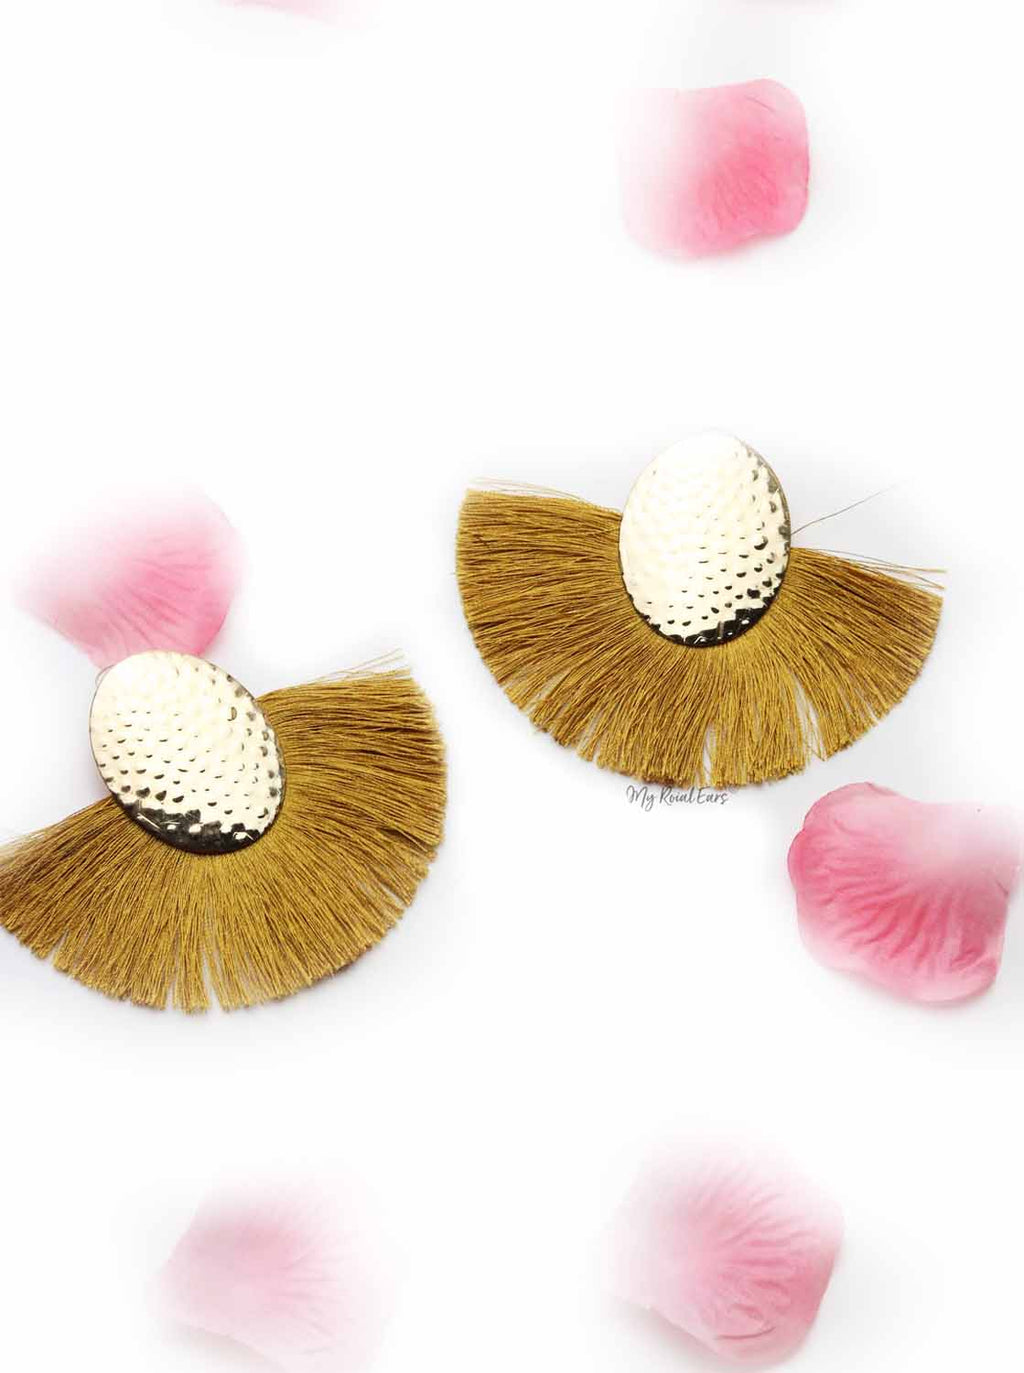 Blue Passion- golden egg shaped tassel earrings - My Roial Ears LTD